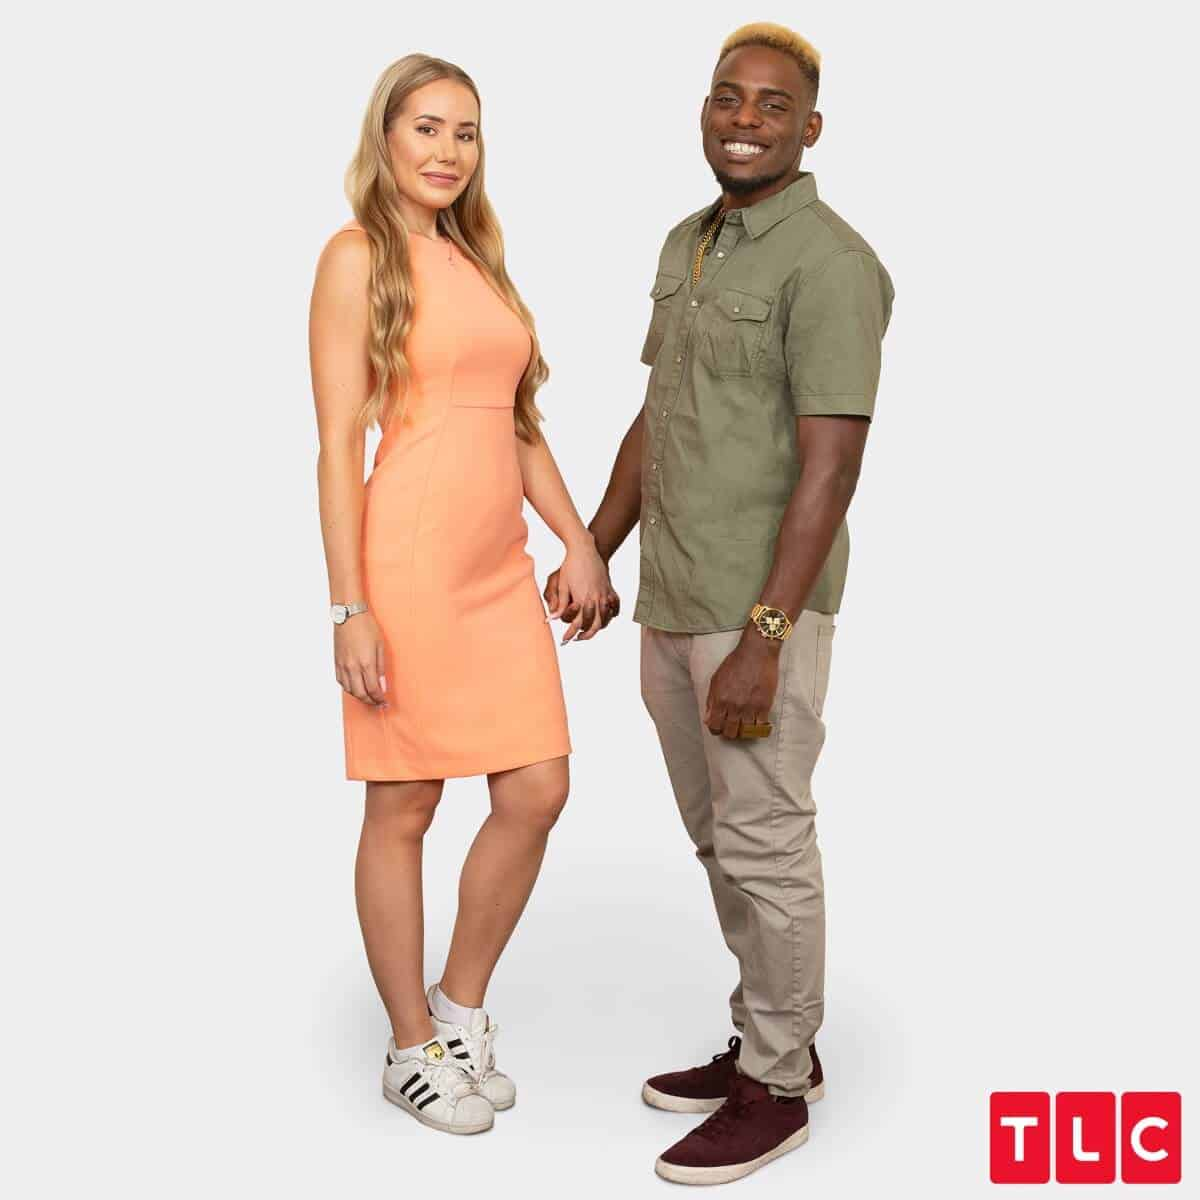 Jasmin and Blake are on Season 7 of 90 Day Fiance